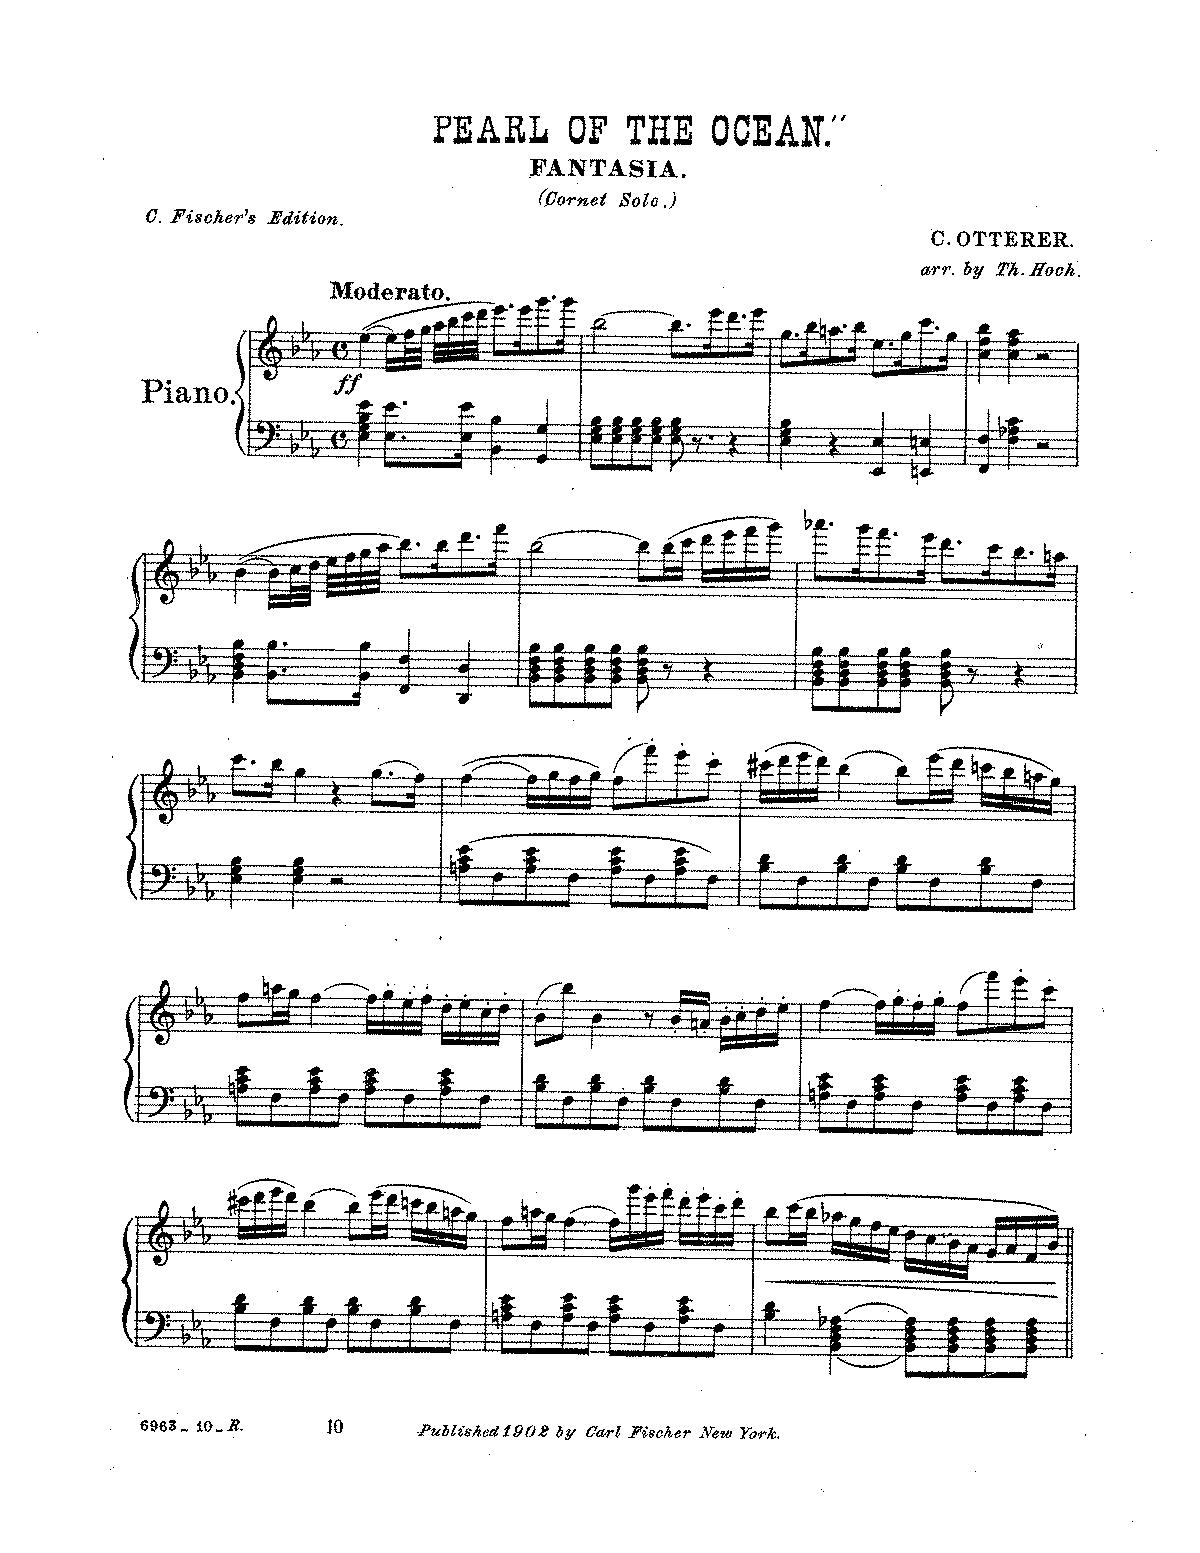 PMLP379405-Hoch 1902 Pearl of the Ocean Fantasia.pdf